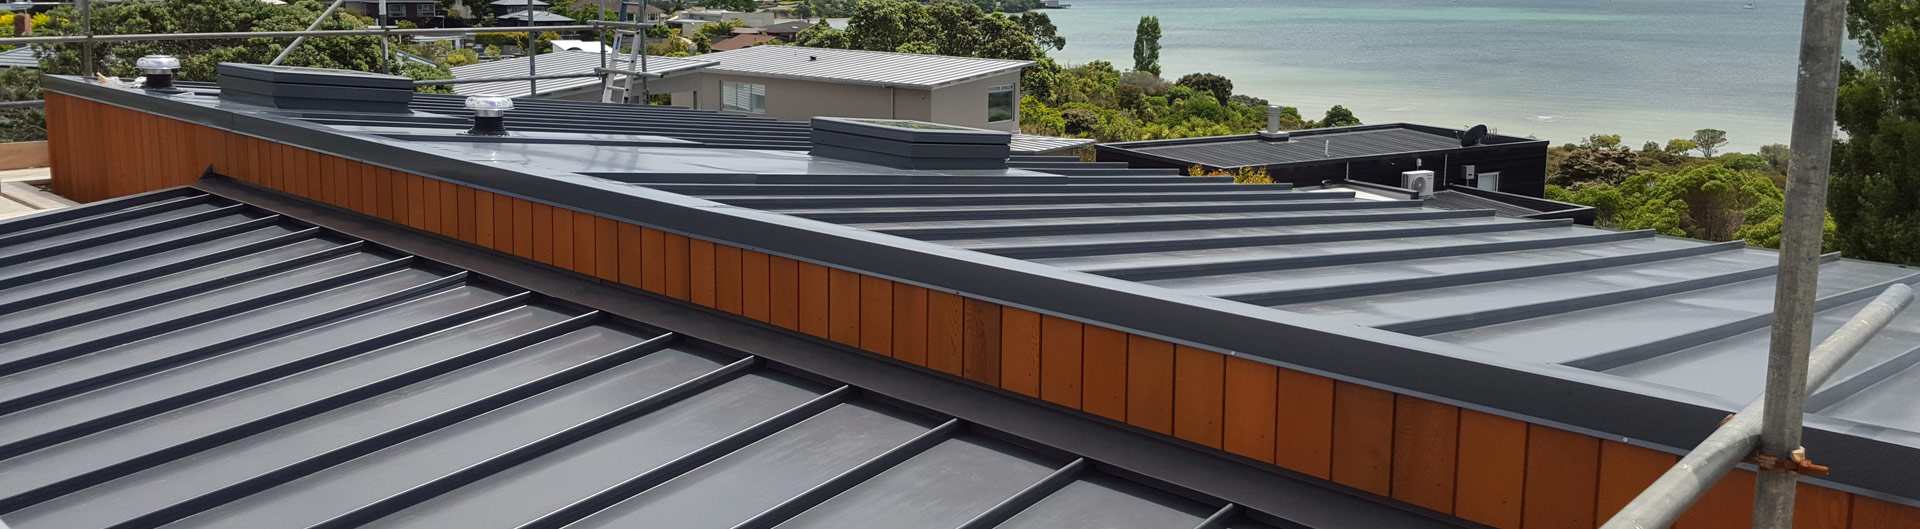 <div><h1>Only The Best Materials  <br/><span>and Processes Used</span></h1><p>We have decades of experience in laying new roofs within the team and our attention to detail is second to none. </p><a href='our-services'>Learn More</a></div>